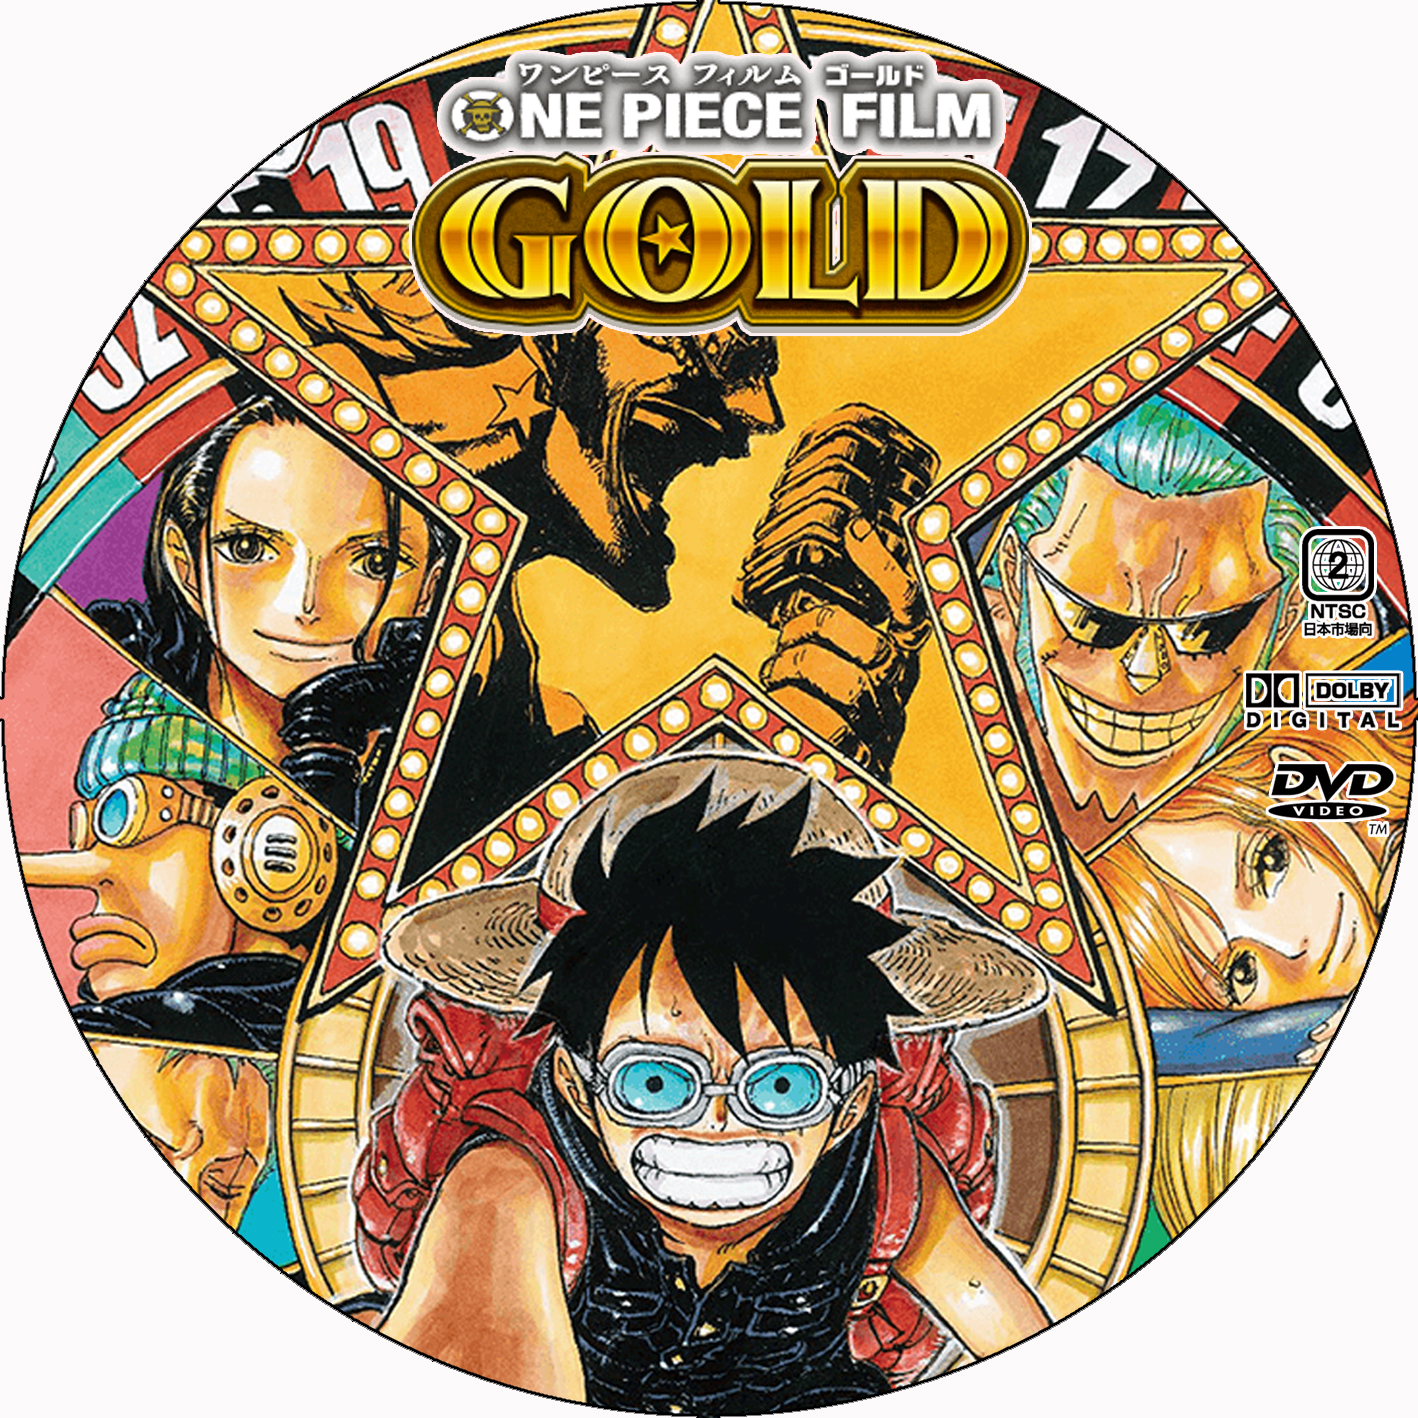 ONE PIECE FILM GOLD DVDラベル